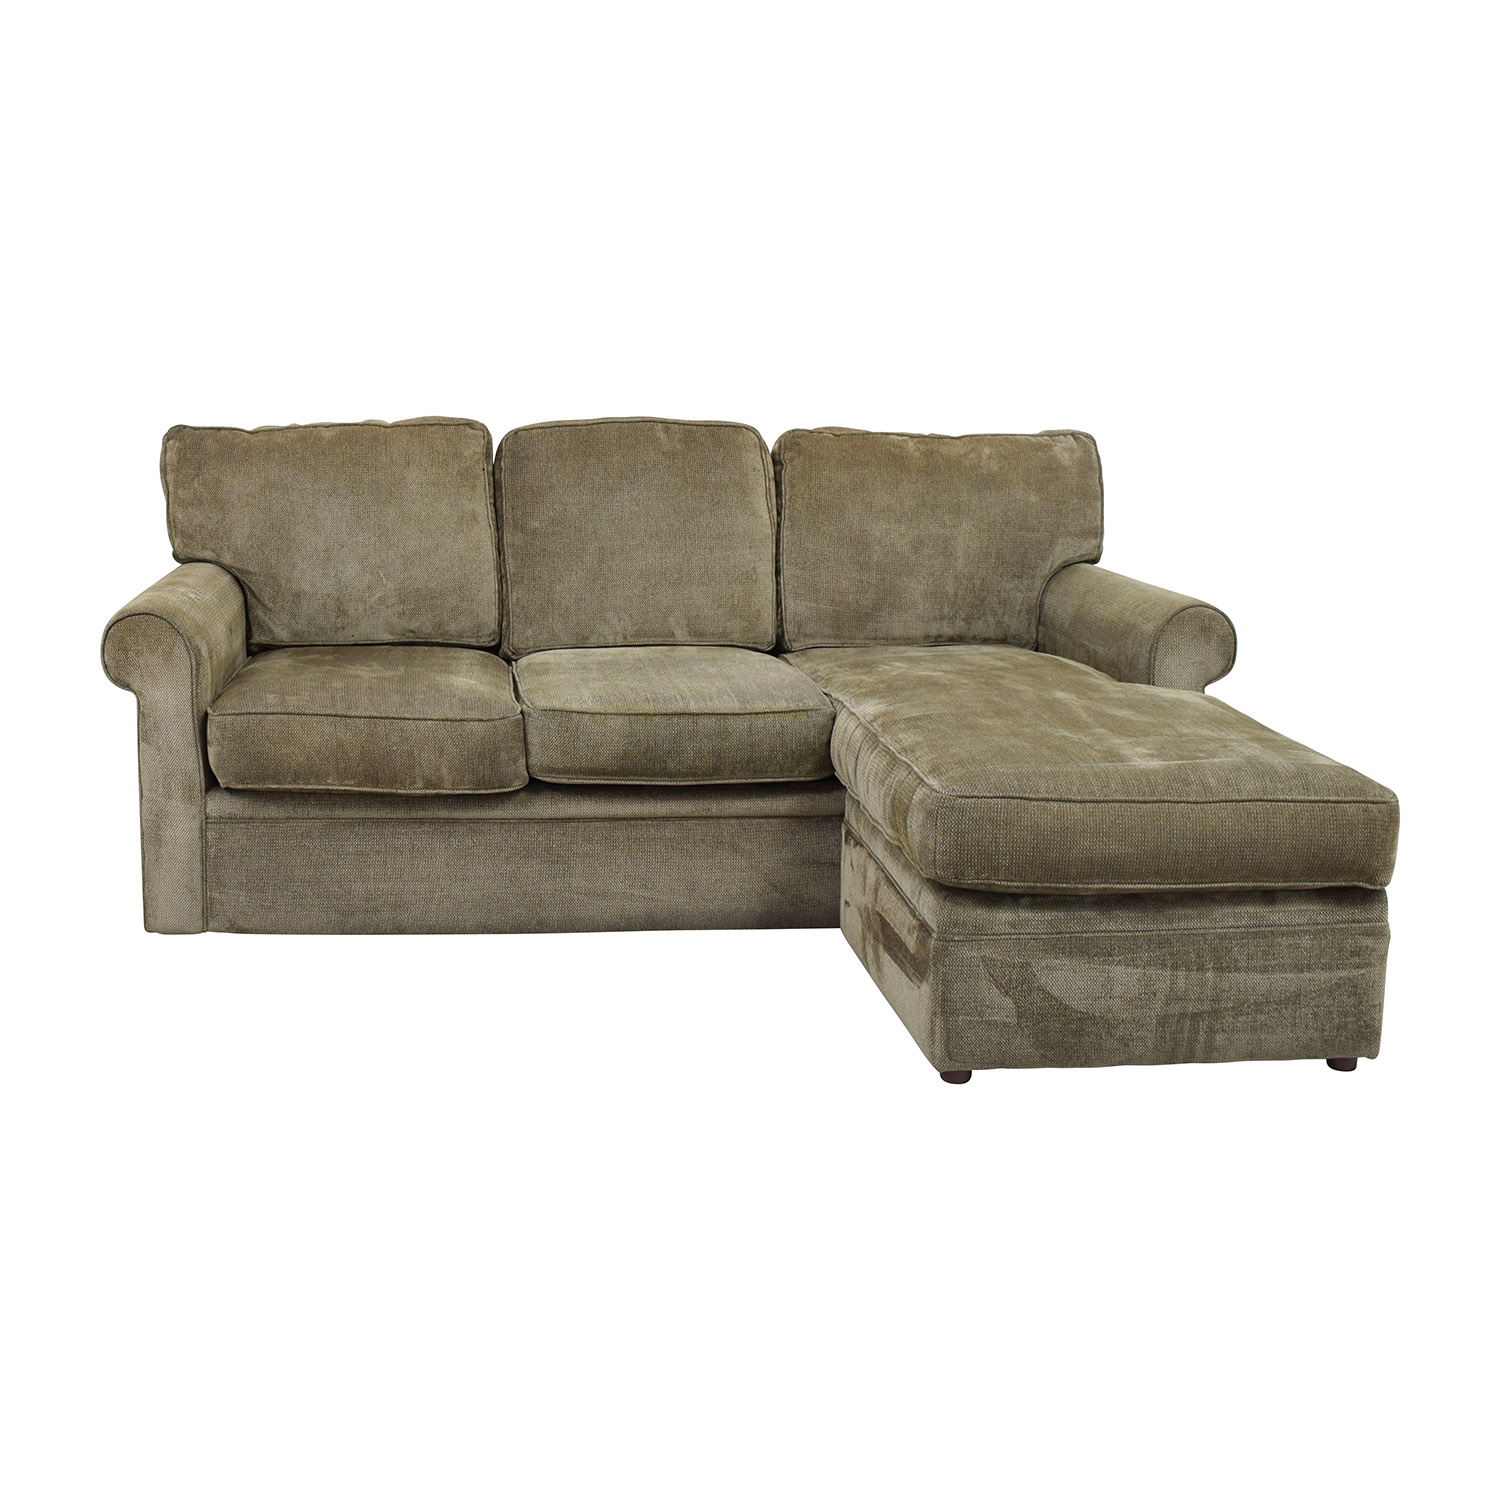 Rowe Furniture Rowe Furniture Green Sectional with Curved Arms Sectionals